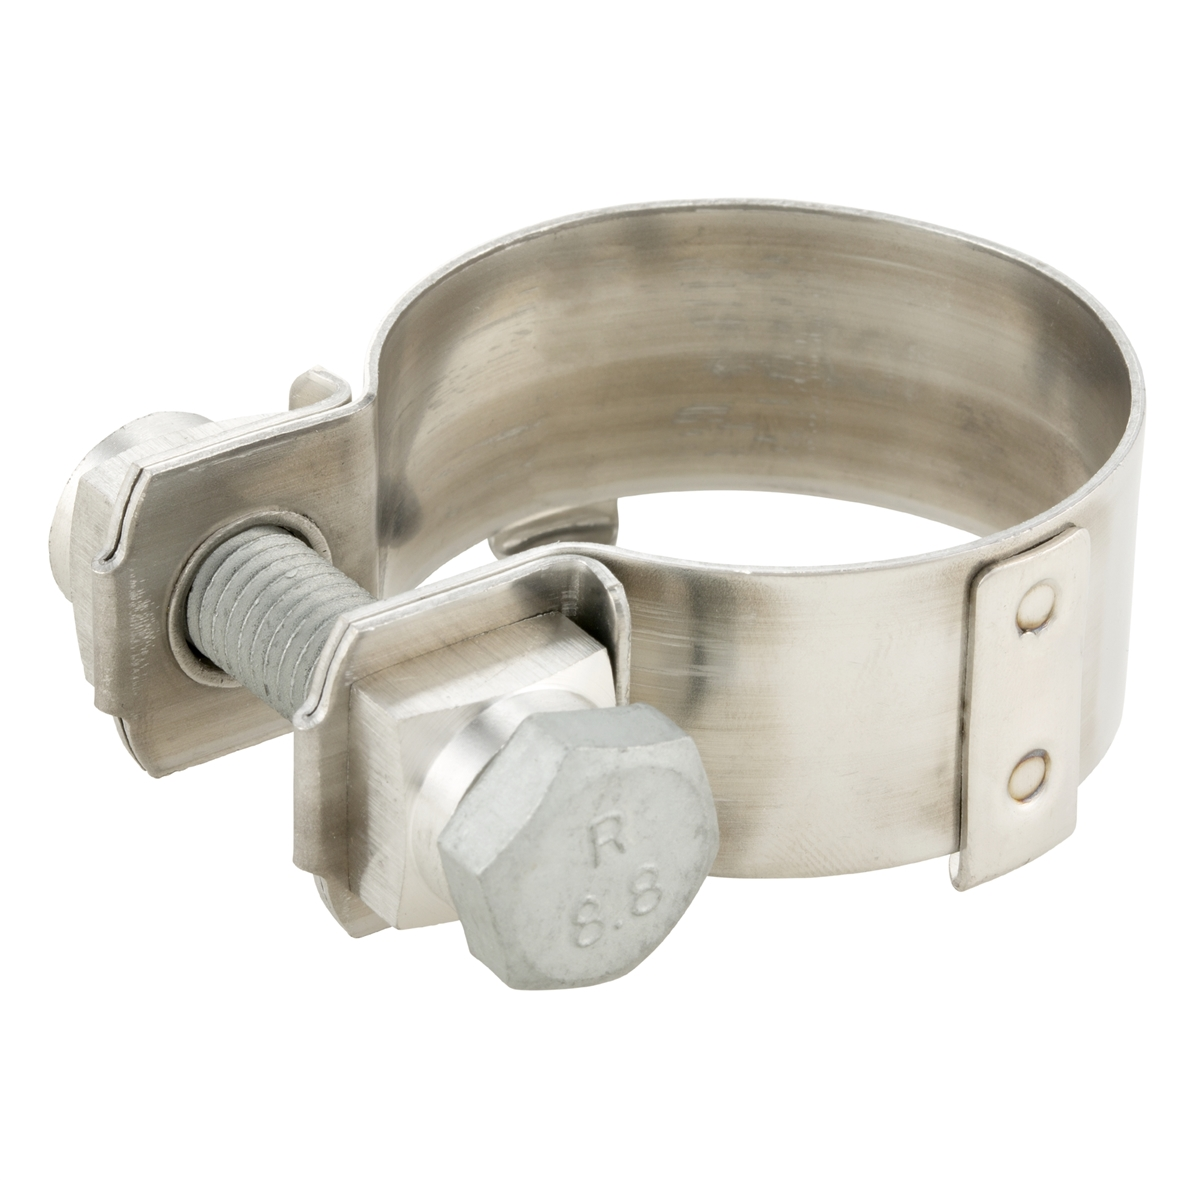 Product Image for 'Clamp PIAGGIO exhaust/manifoldTitle'